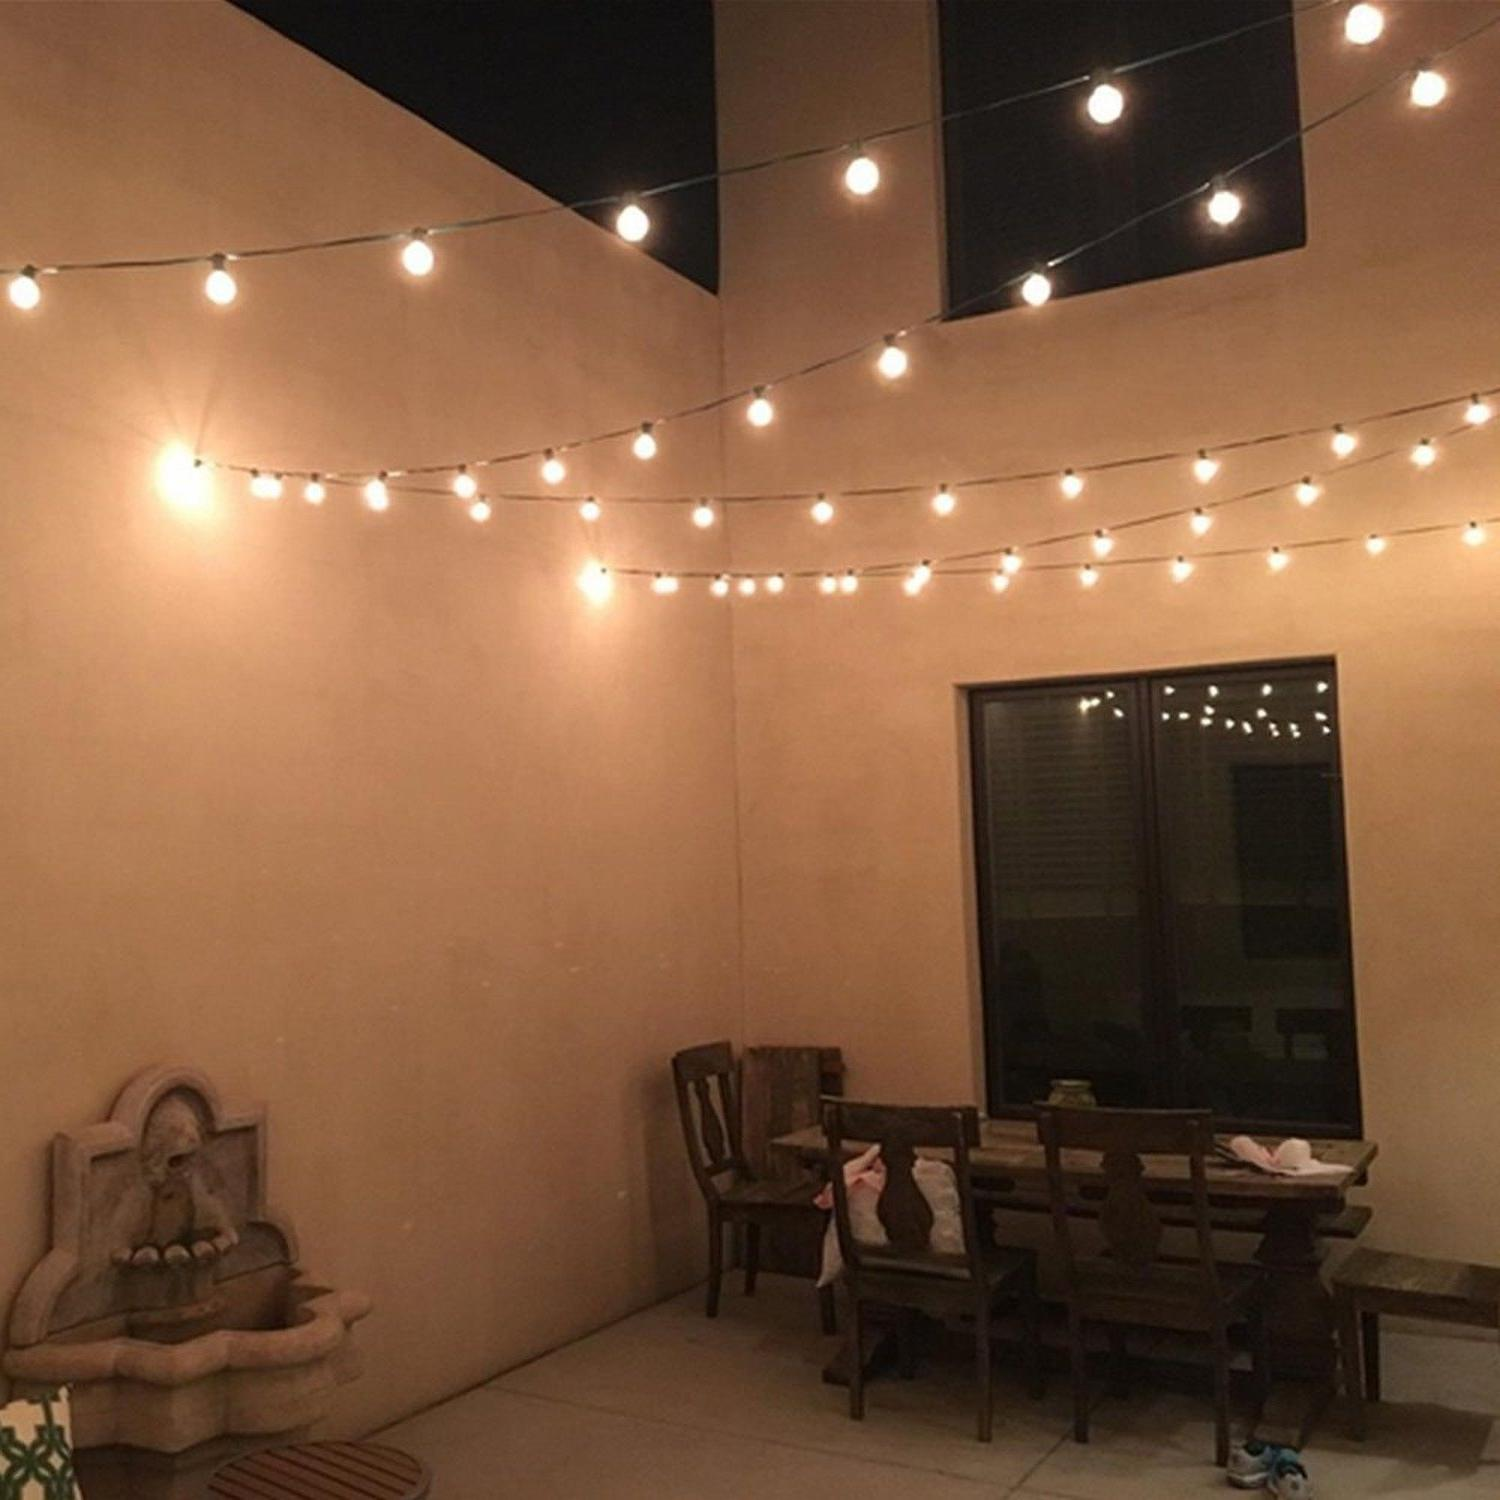 Globe Sting Lights With Hangers For